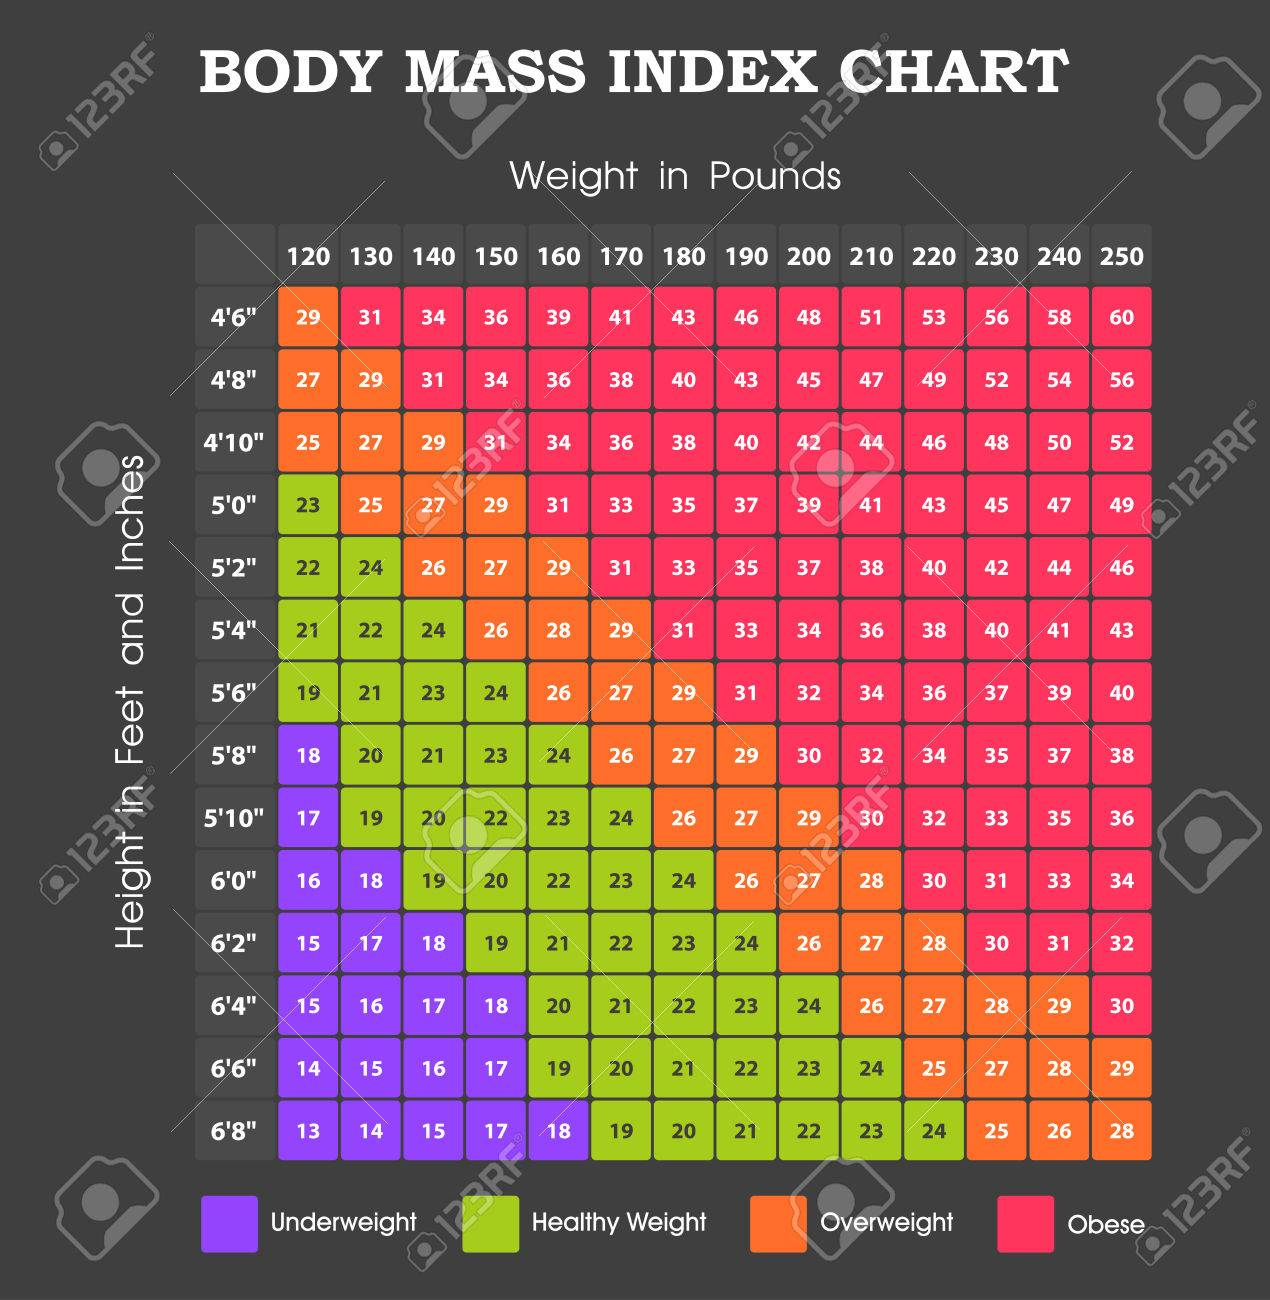 Body mass index chart height an weight infographic royalty free body mass index chart height an weight infographic stock vector 57528359 nvjuhfo Gallery